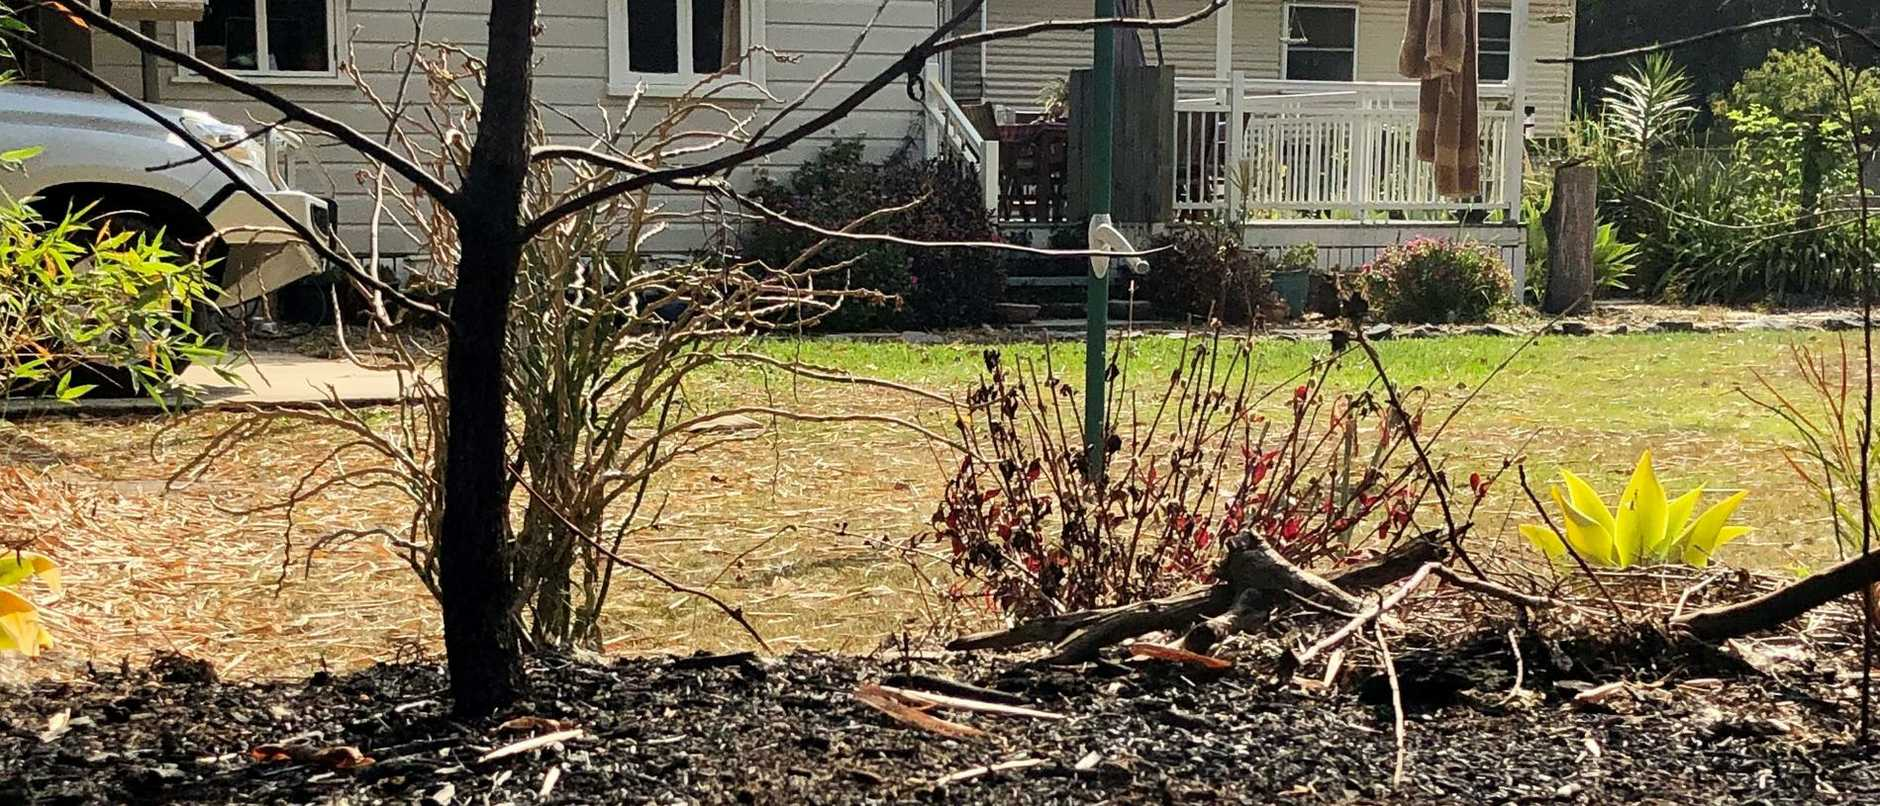 The fire burnt extremely close to the Blake's house.